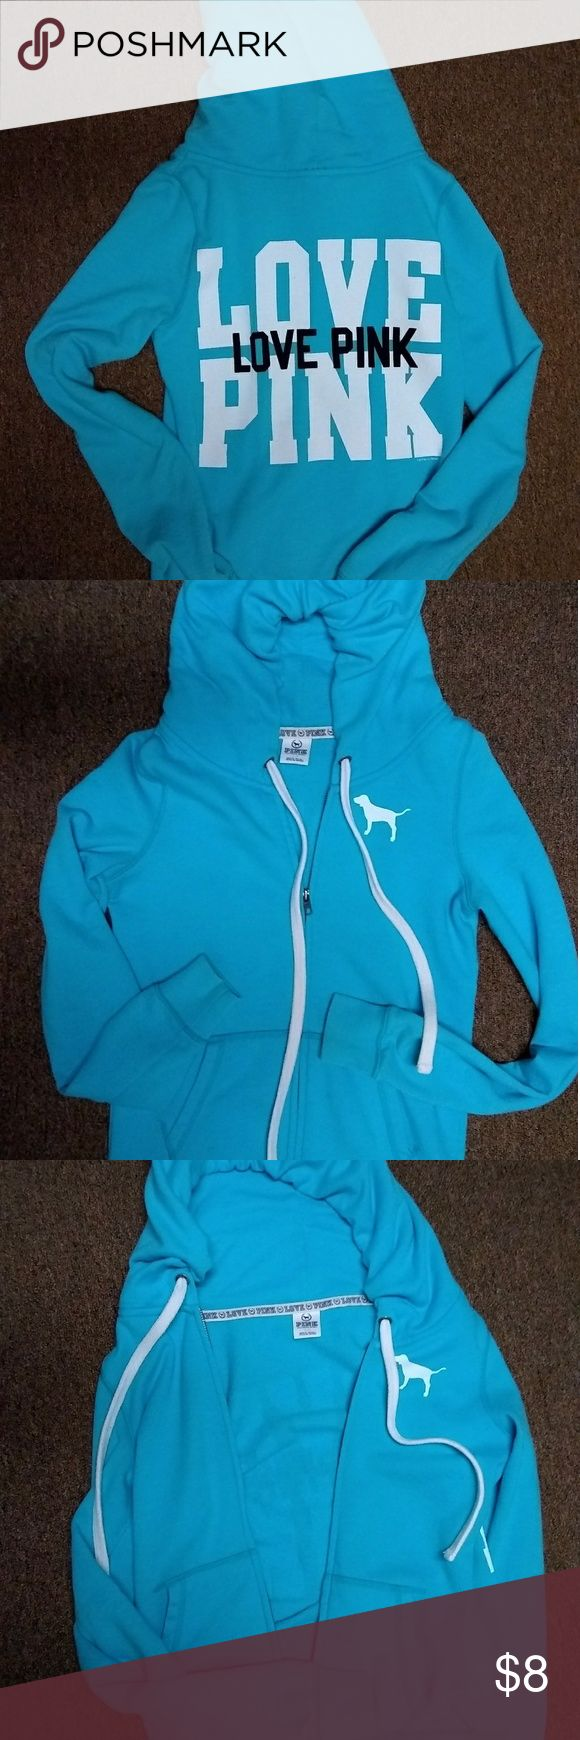 VS Pink light blue zip up hoodie size SmP Super cute hoodie. There is a small stains on the front pocket. Hard to notice at a glance. I did capture in blown up pic.. Still a great hoodie! PINK Tops Sweatshirts & Hoodies